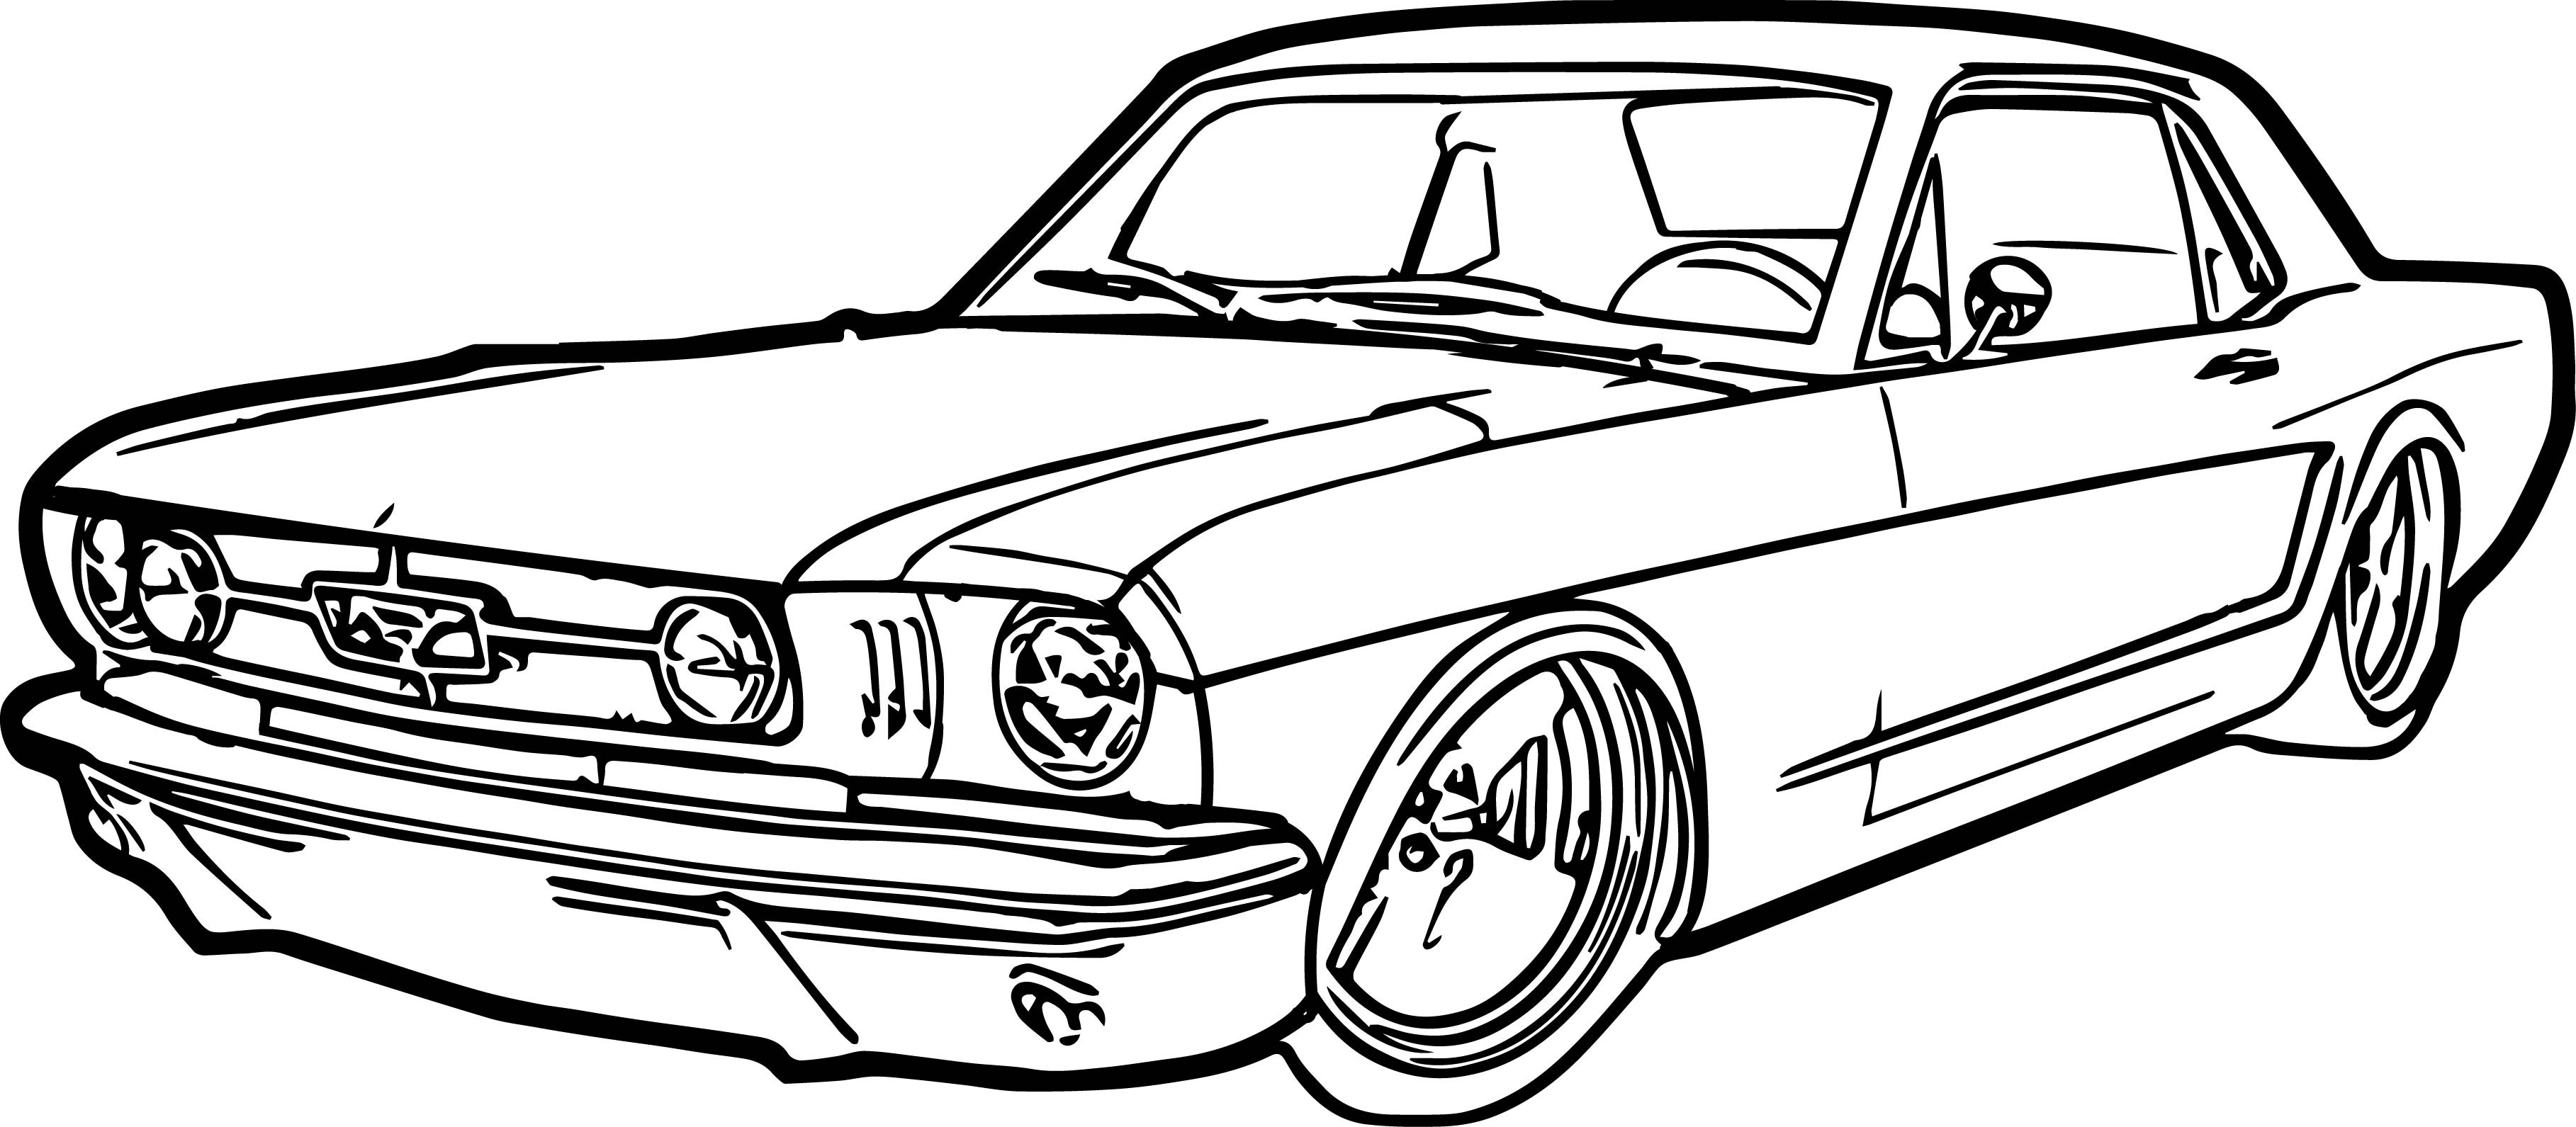 55 Chevy Drawing At Getdrawings